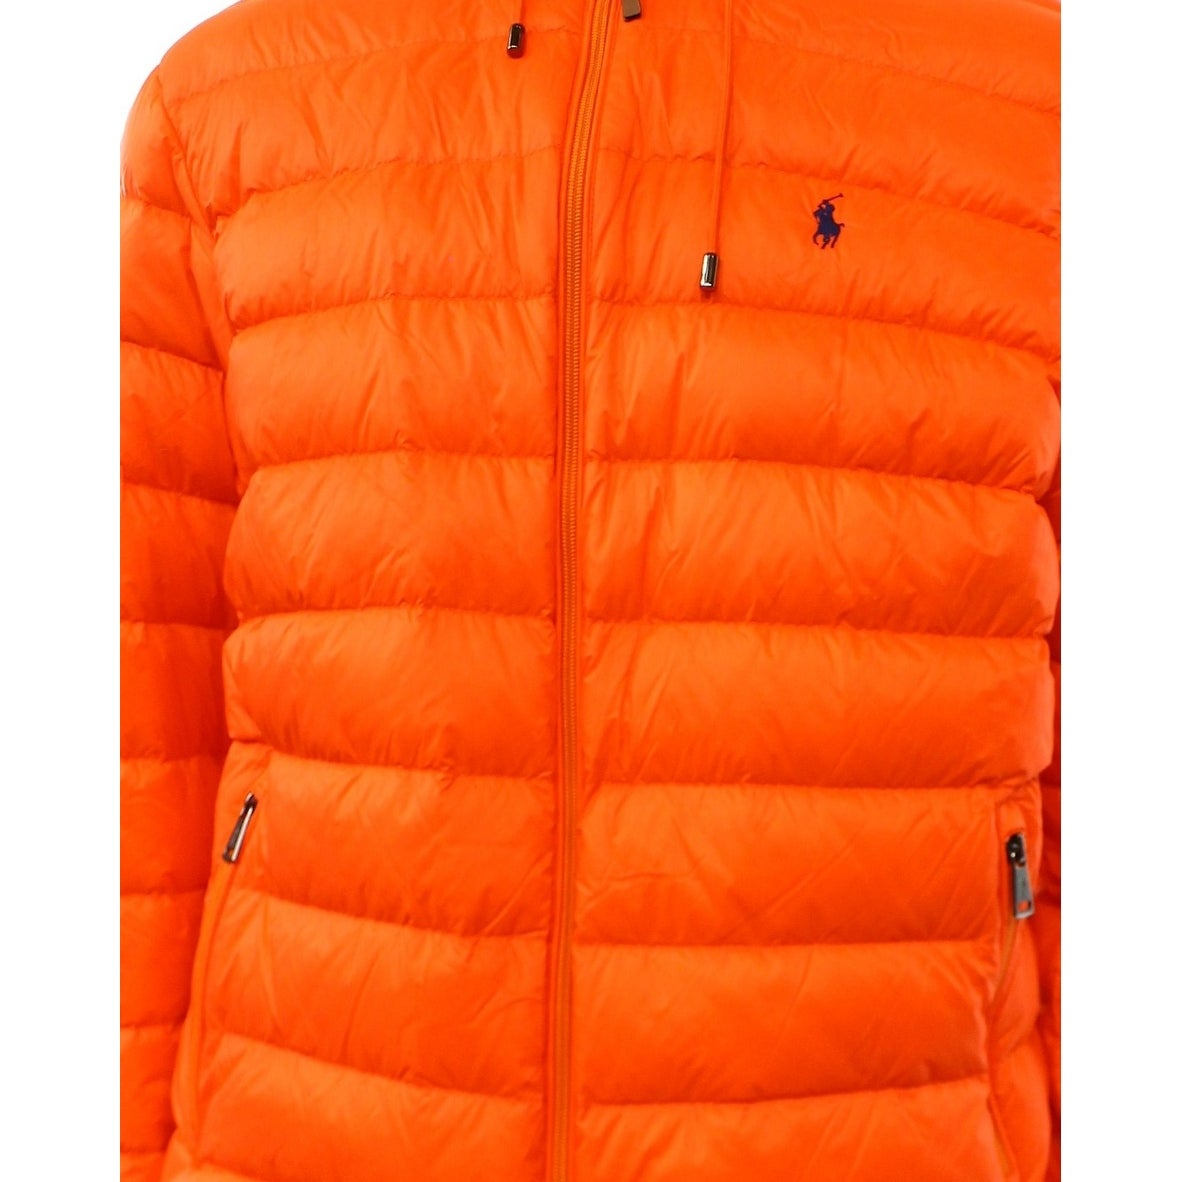 Shop Polo Ralph Lauren NEW Orange Mens Size Large L Down Puffer Jacket -  Free Shipping Today - Overstock.com - 19677504